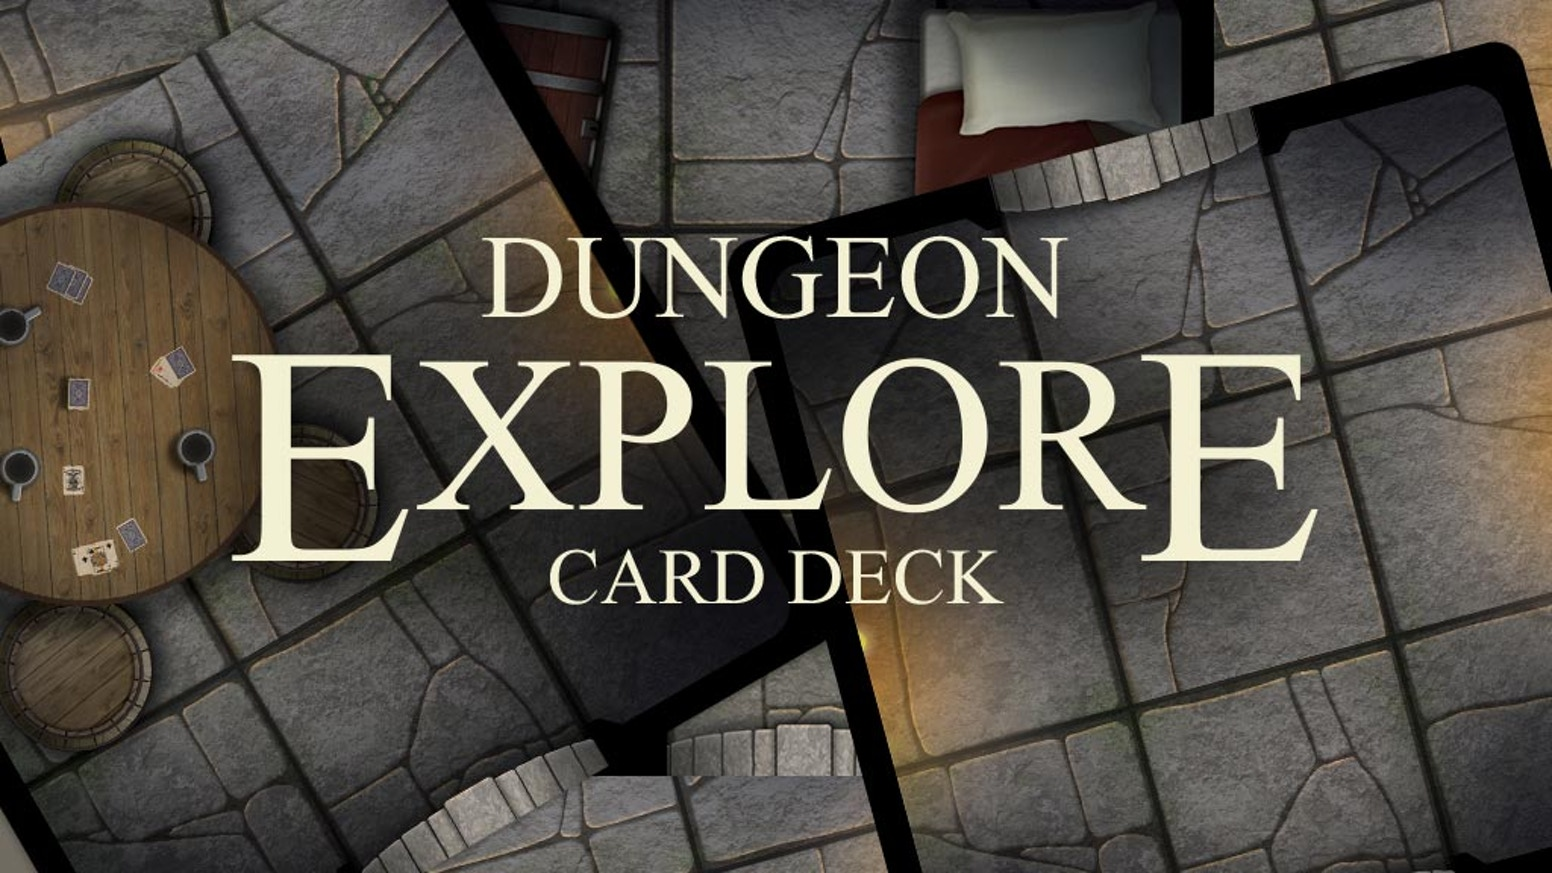 Build a dungeon anywhere with 48 modular tile cards. Each card has a 3x3 grid and unique artwork to bring your tabletop games to life.